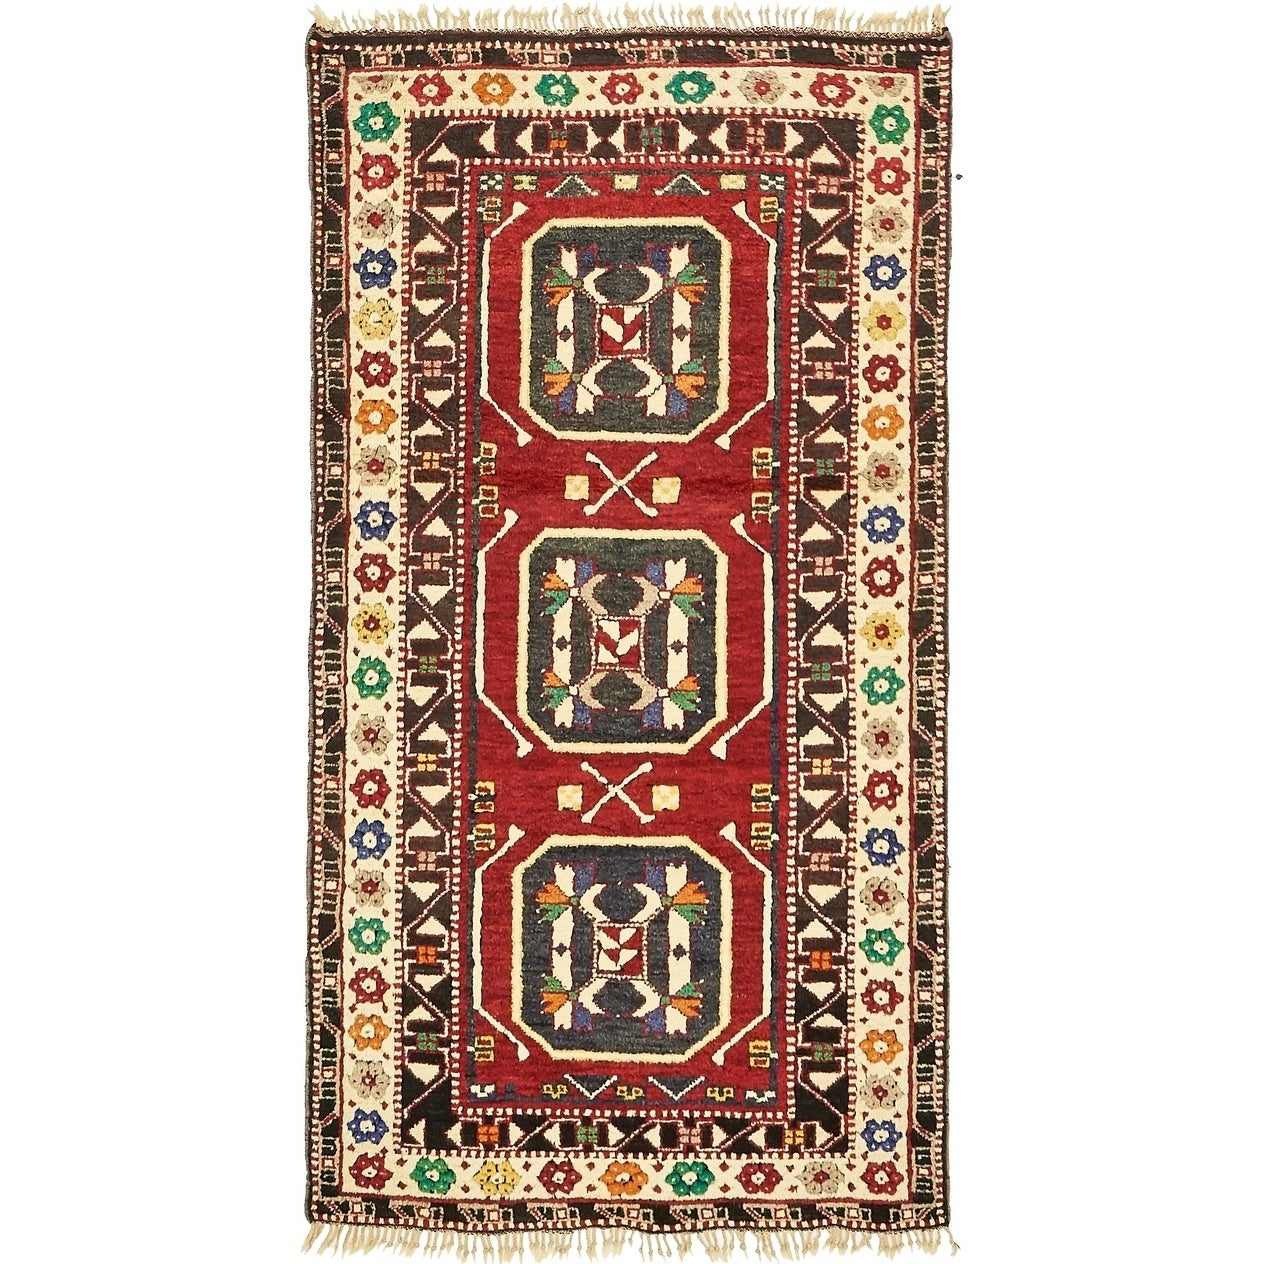 Hand Knotted Kars Wool Area Rug - 3 3 x 6 3 (Black - 3 3 x 6 3)